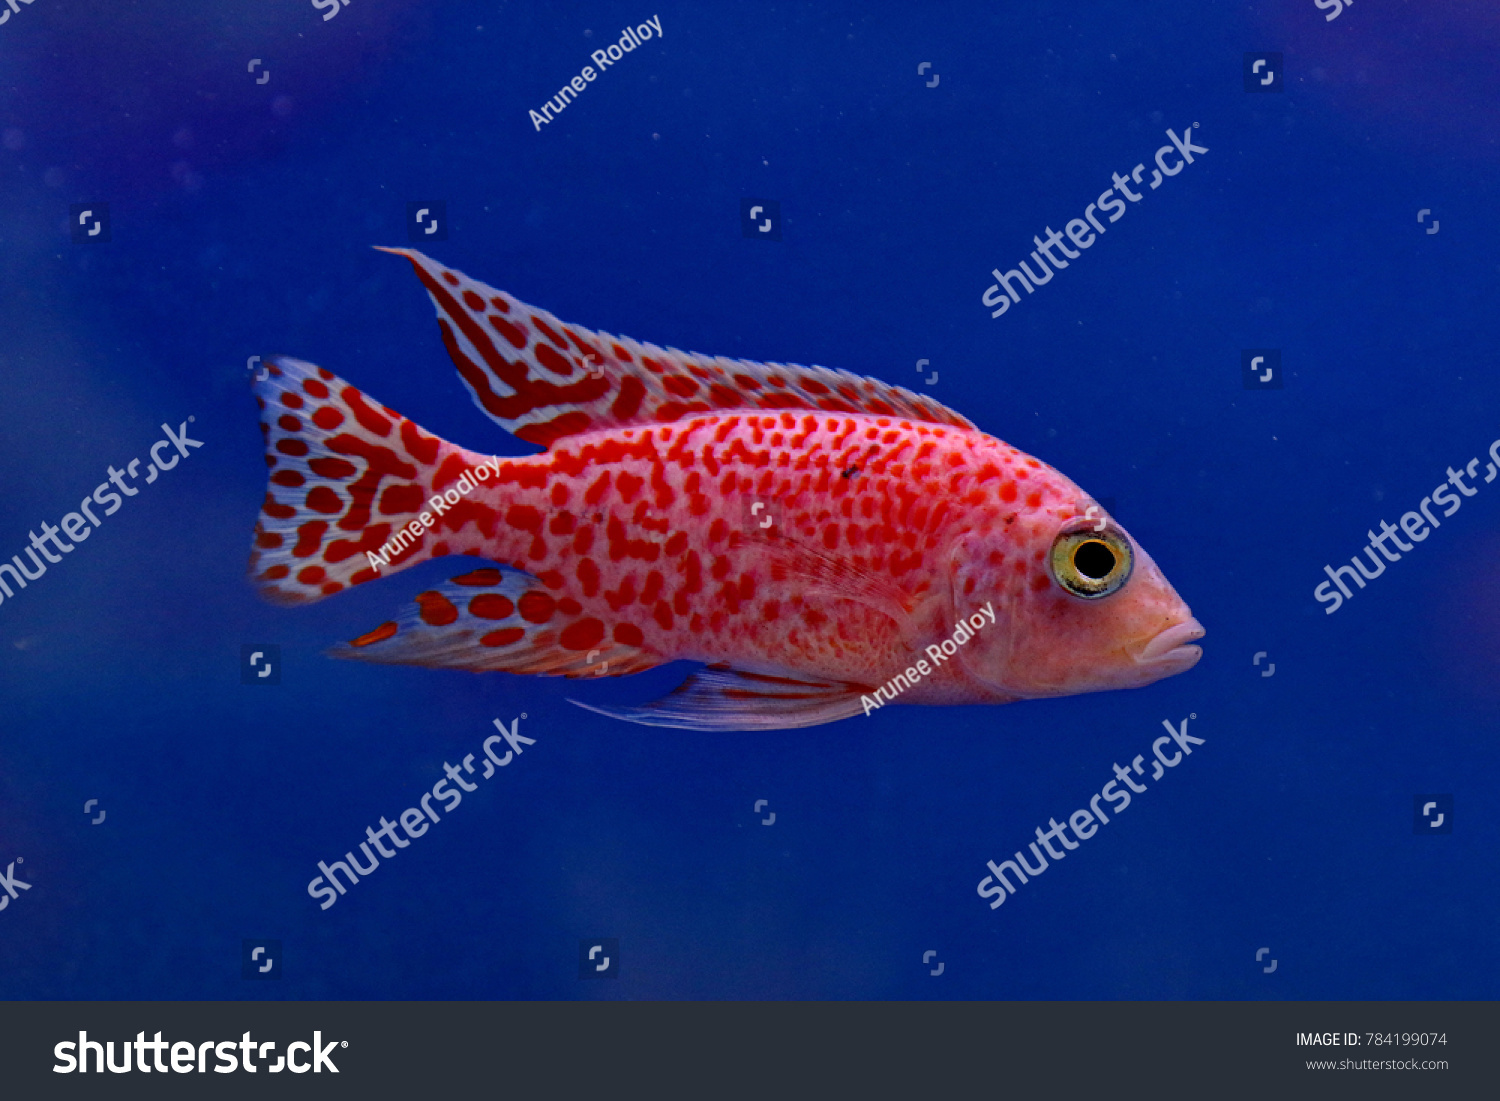 Colorful Ornamental Fish Lake Malawi Cichlids Stock Photo (Royalty ...